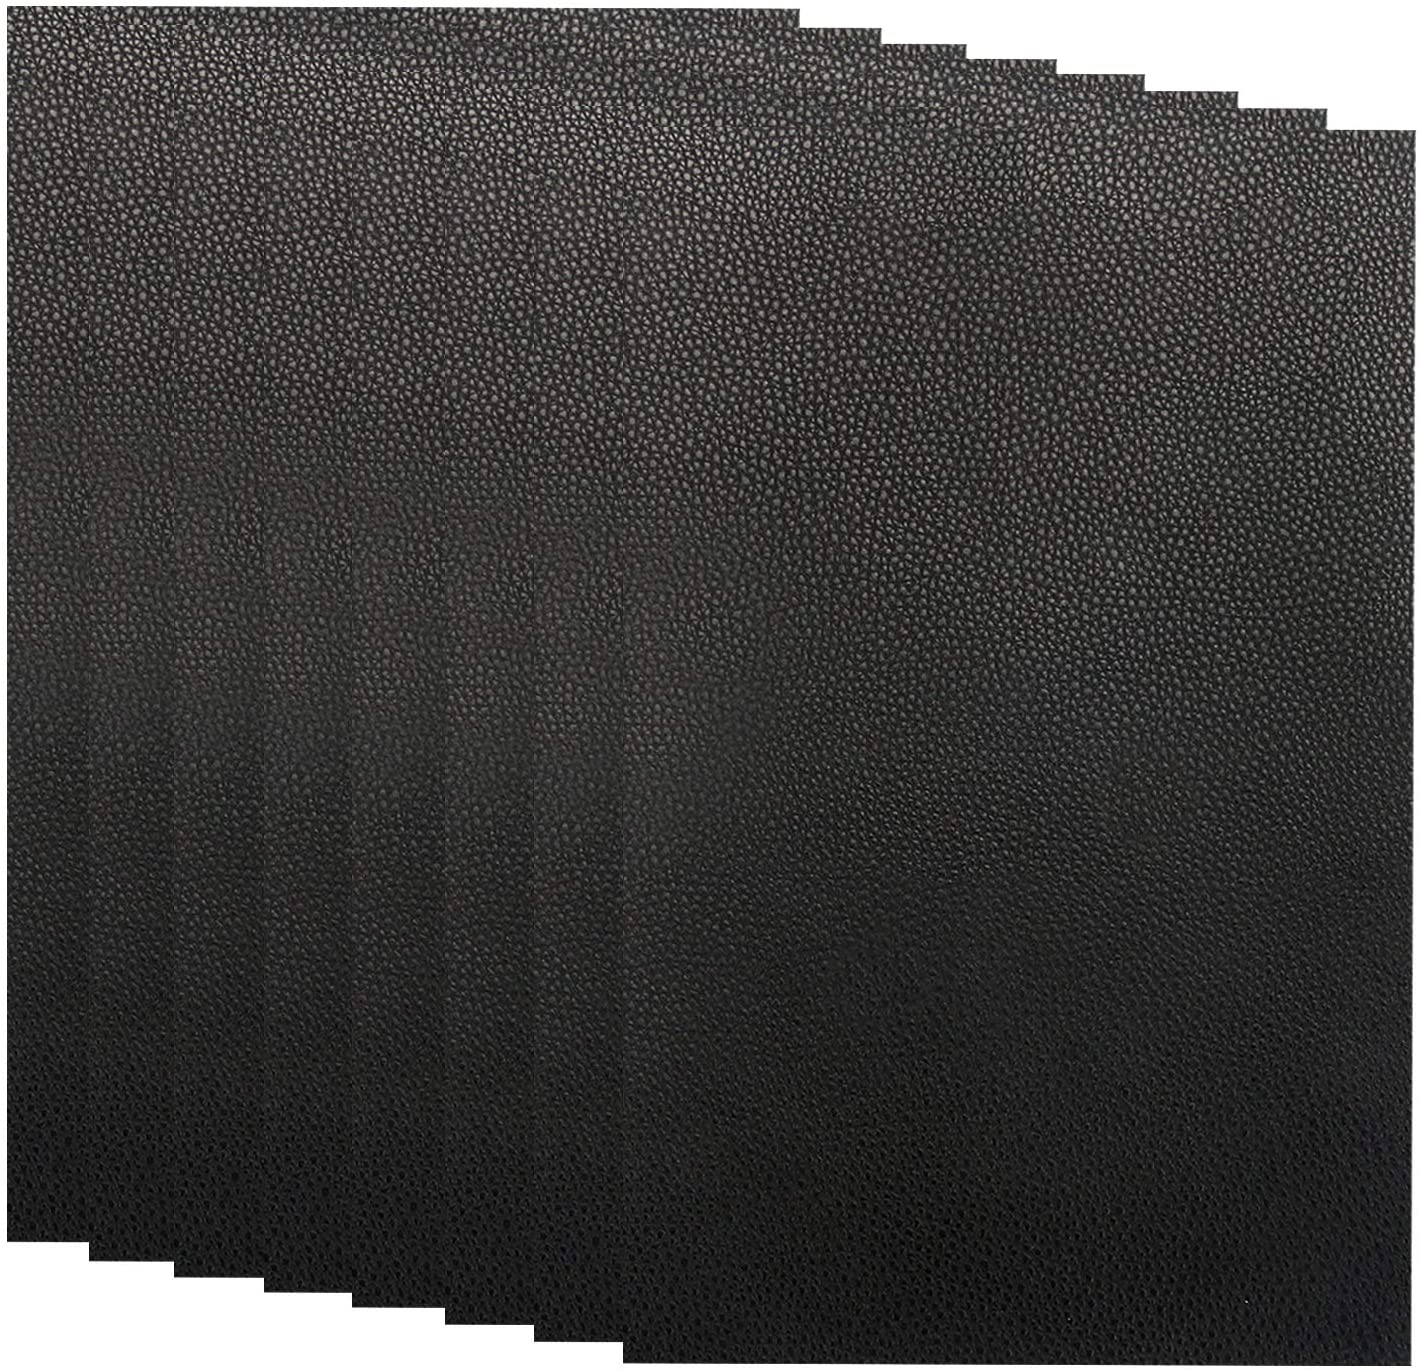 8 Pieces Leather Repair Patches, First-aid for Sofas Car Seats, Handbags Jackets, 8-inch by 12-inch, Black